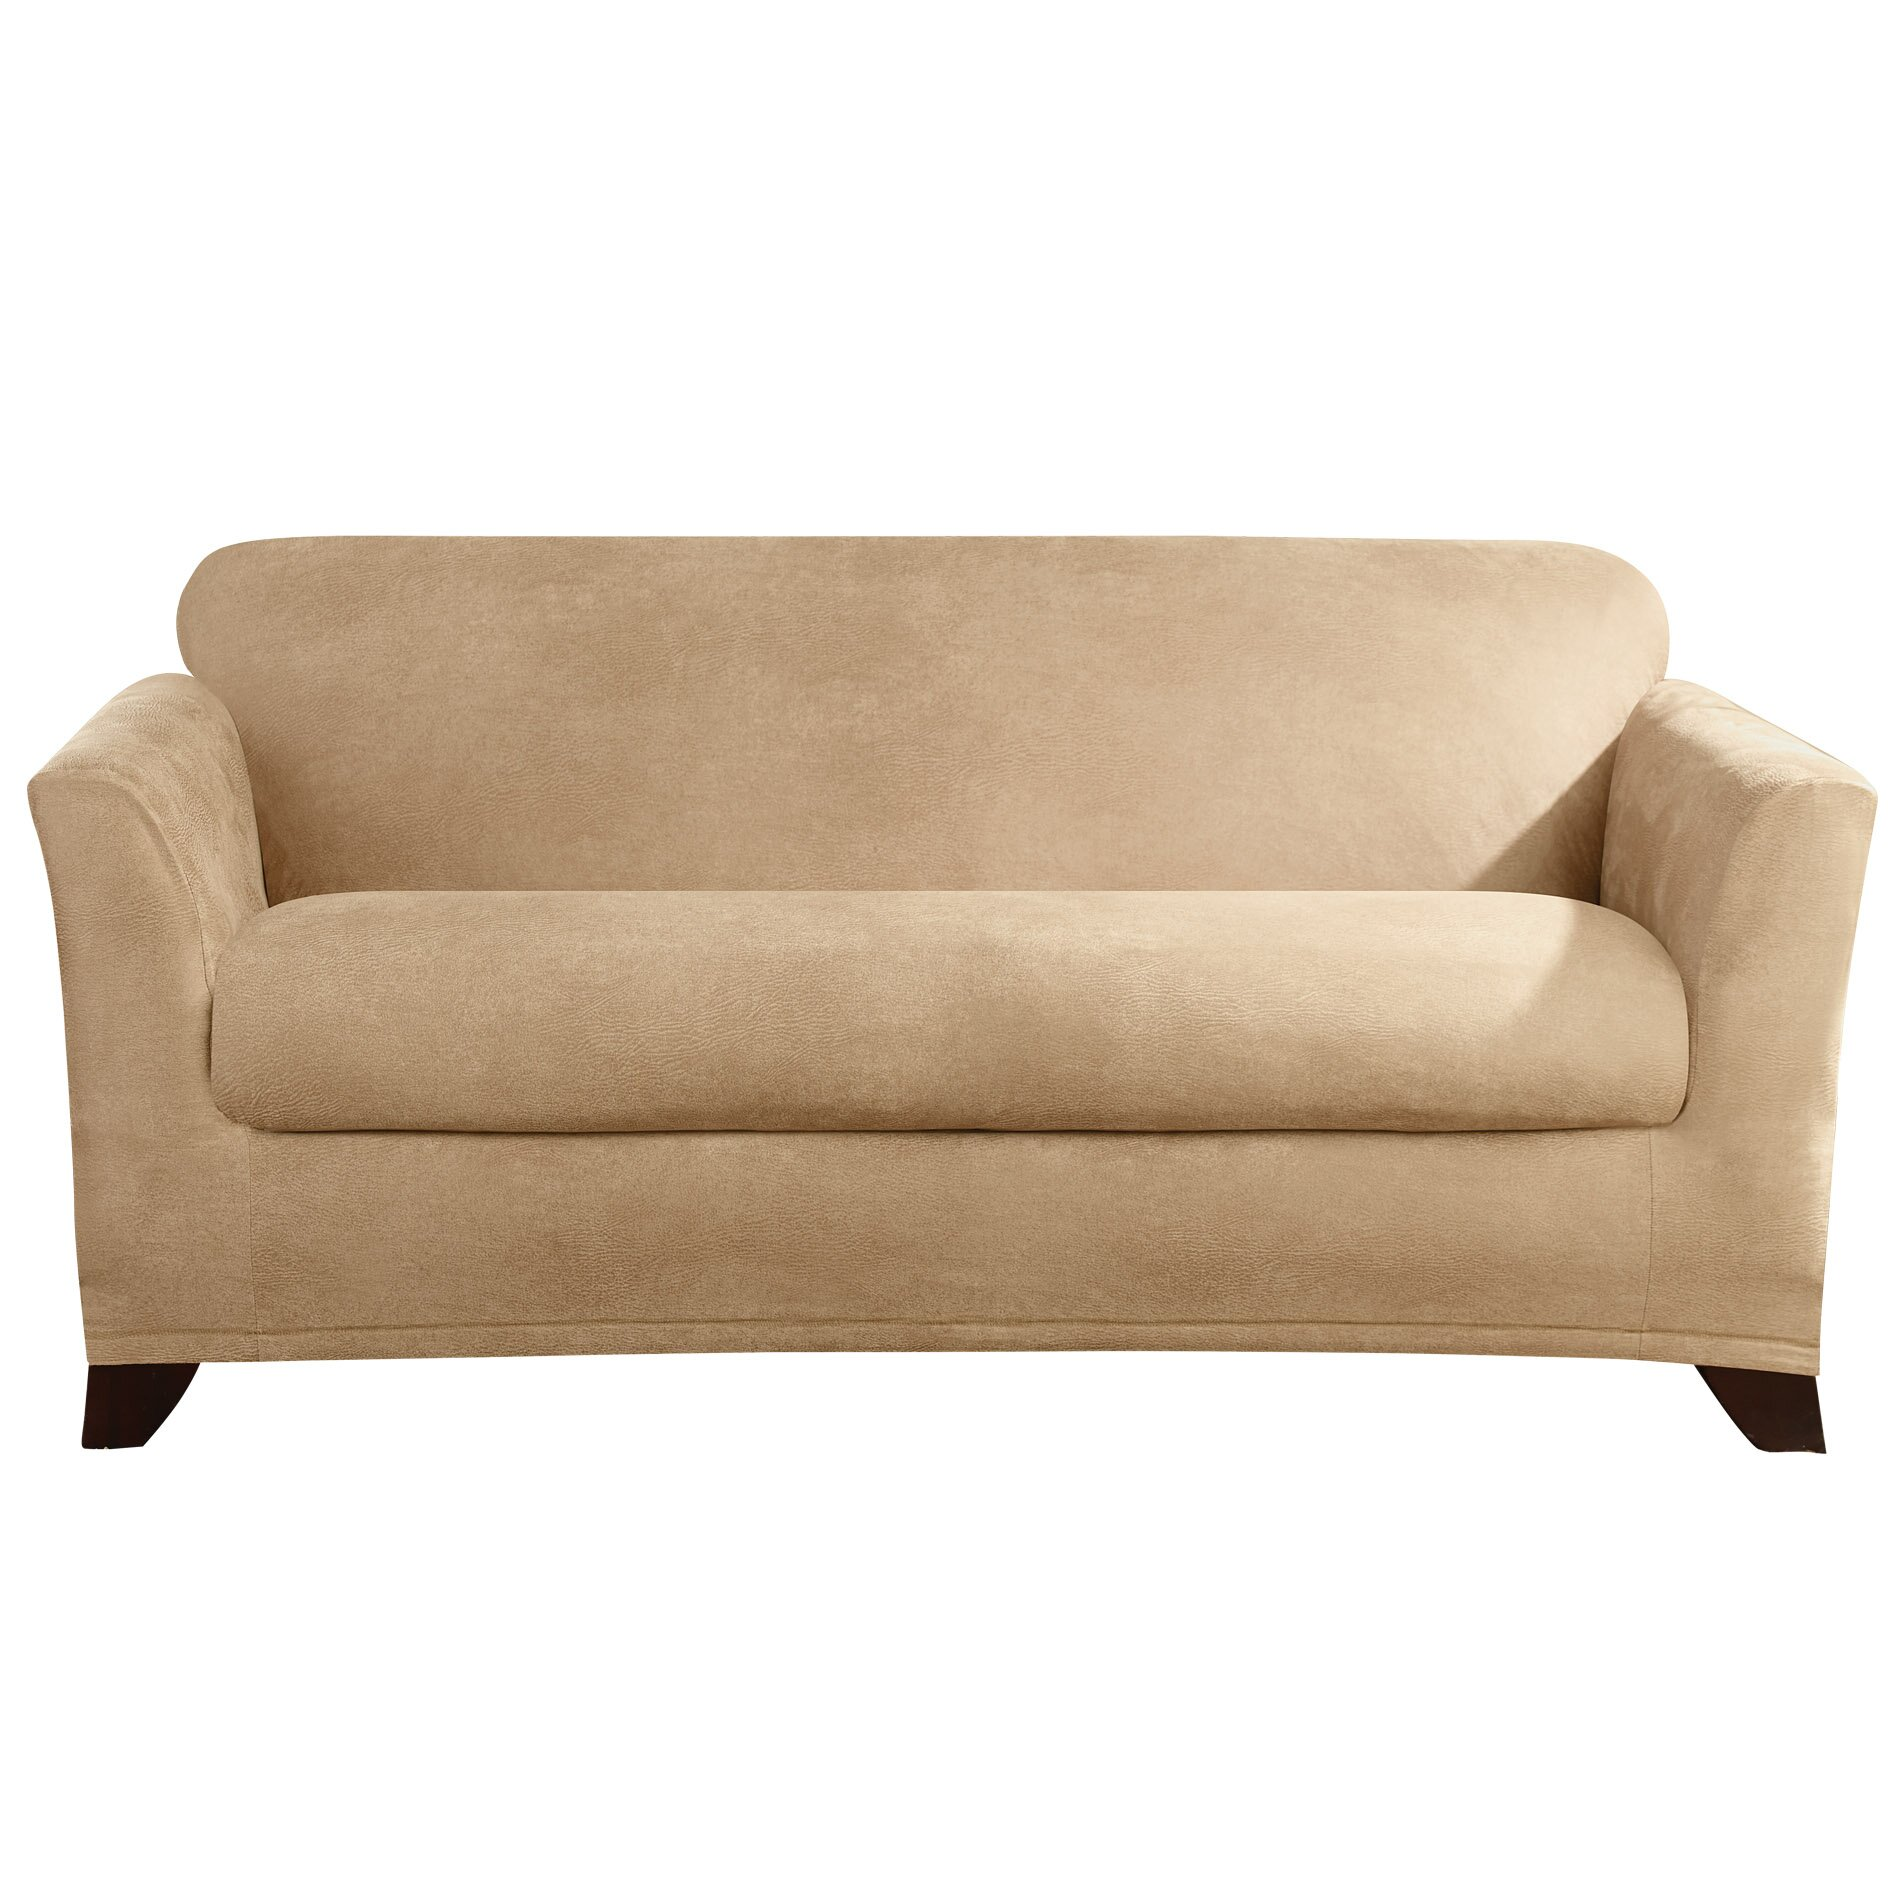 Sure fit stretch leather loveseat slipcover wayfair Loveseat stretch slipcovers